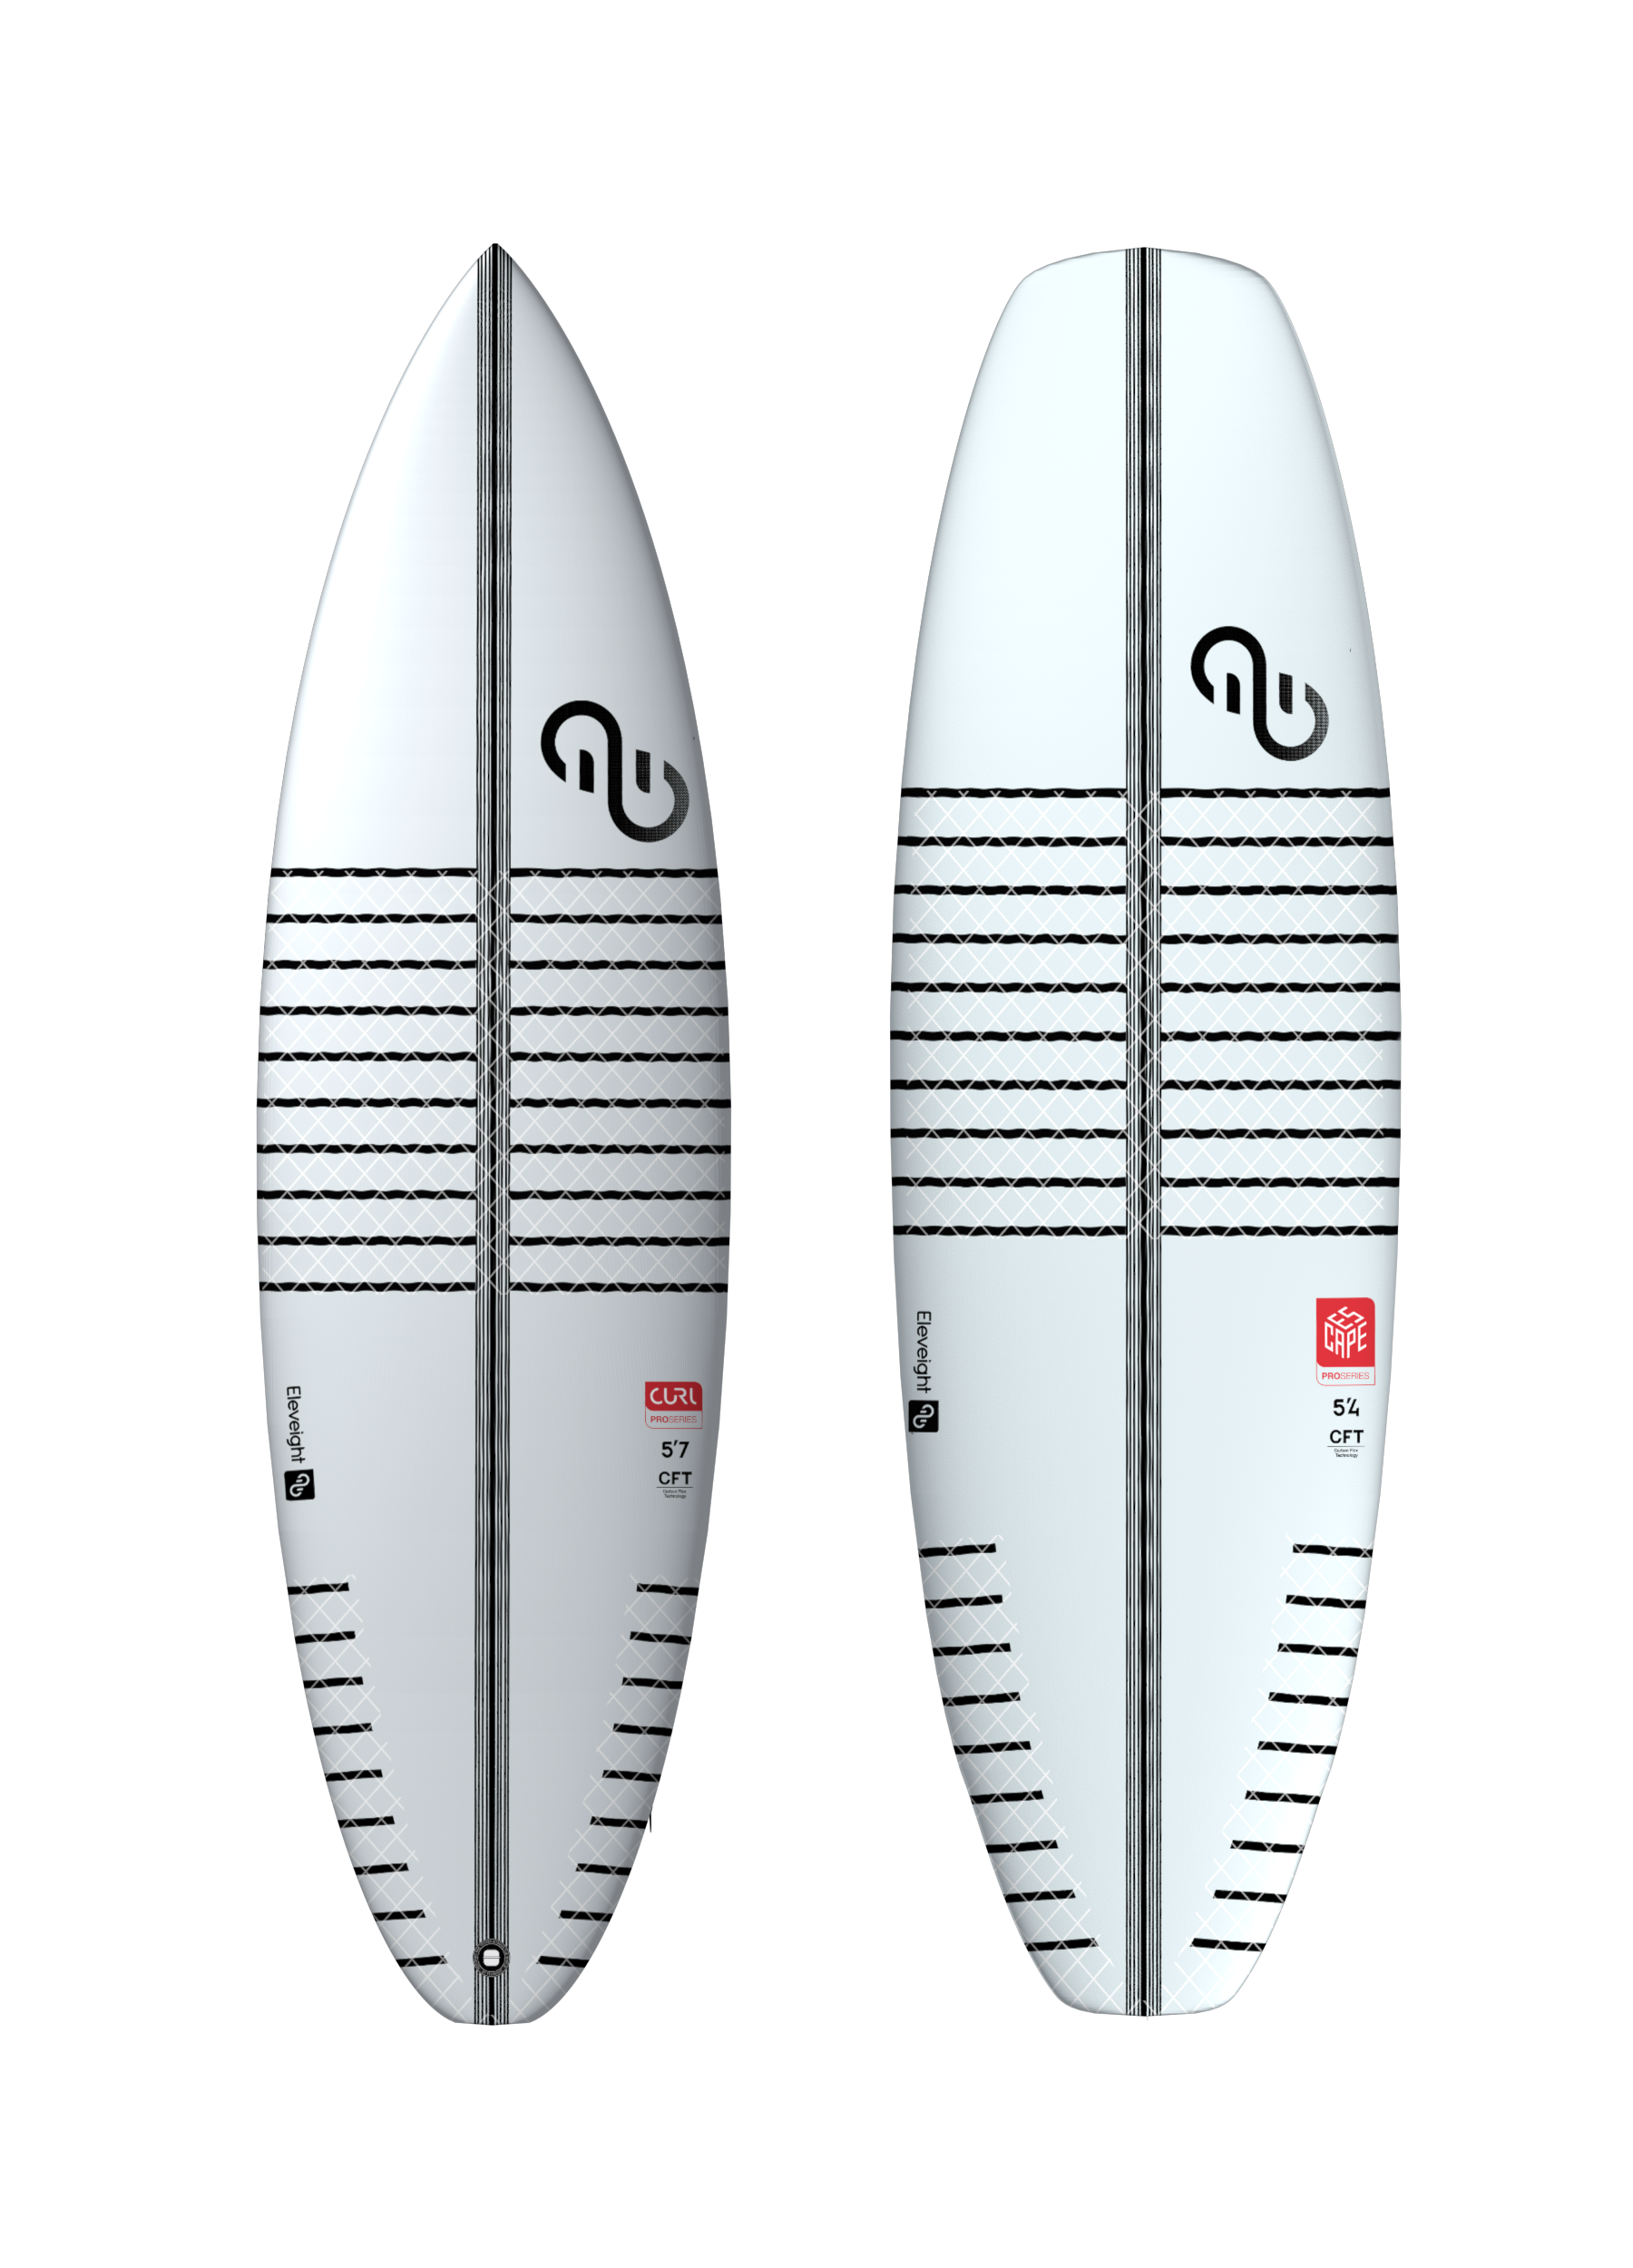 "- Curl ProSizes 5'7"", 5'10""Escape ProSizes 4'11"", 5'1"", 5'4""CFT construction that generates a pure surf feelCarbon stringer for responsive flex and durabilityInnegra/carbon vector grid reinforcements for enhanced durabilityShort rail line to minimize drag and faster rotationsThruster fin set-up with Futures systemHigh-performance board shaped by hand (no inserts for straps)The Curl Pro is based on the shape of proven performance surfboards and was adapted and optimized for kite-powered riding. The Escape Pro is a fierce strapless board handmade in Portugal, optimized for freestyle and wave riding."